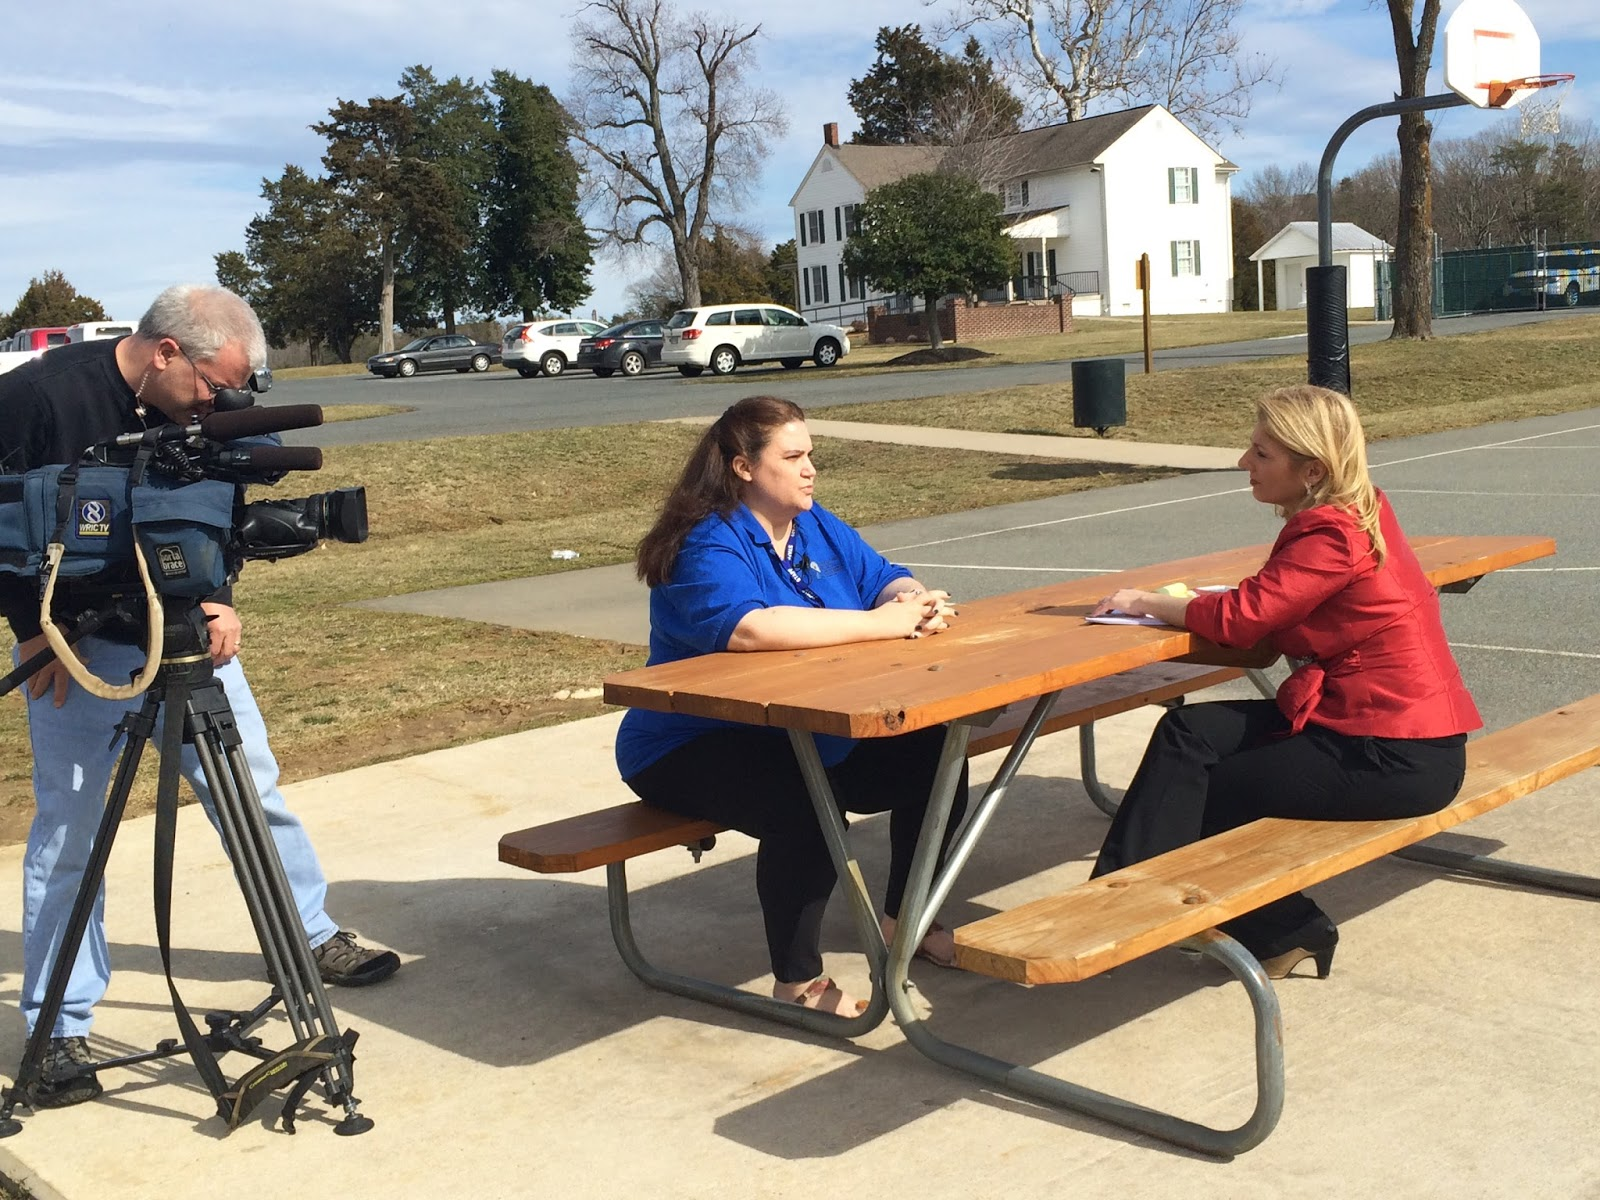 Interview with WRIC-TV in Virginia